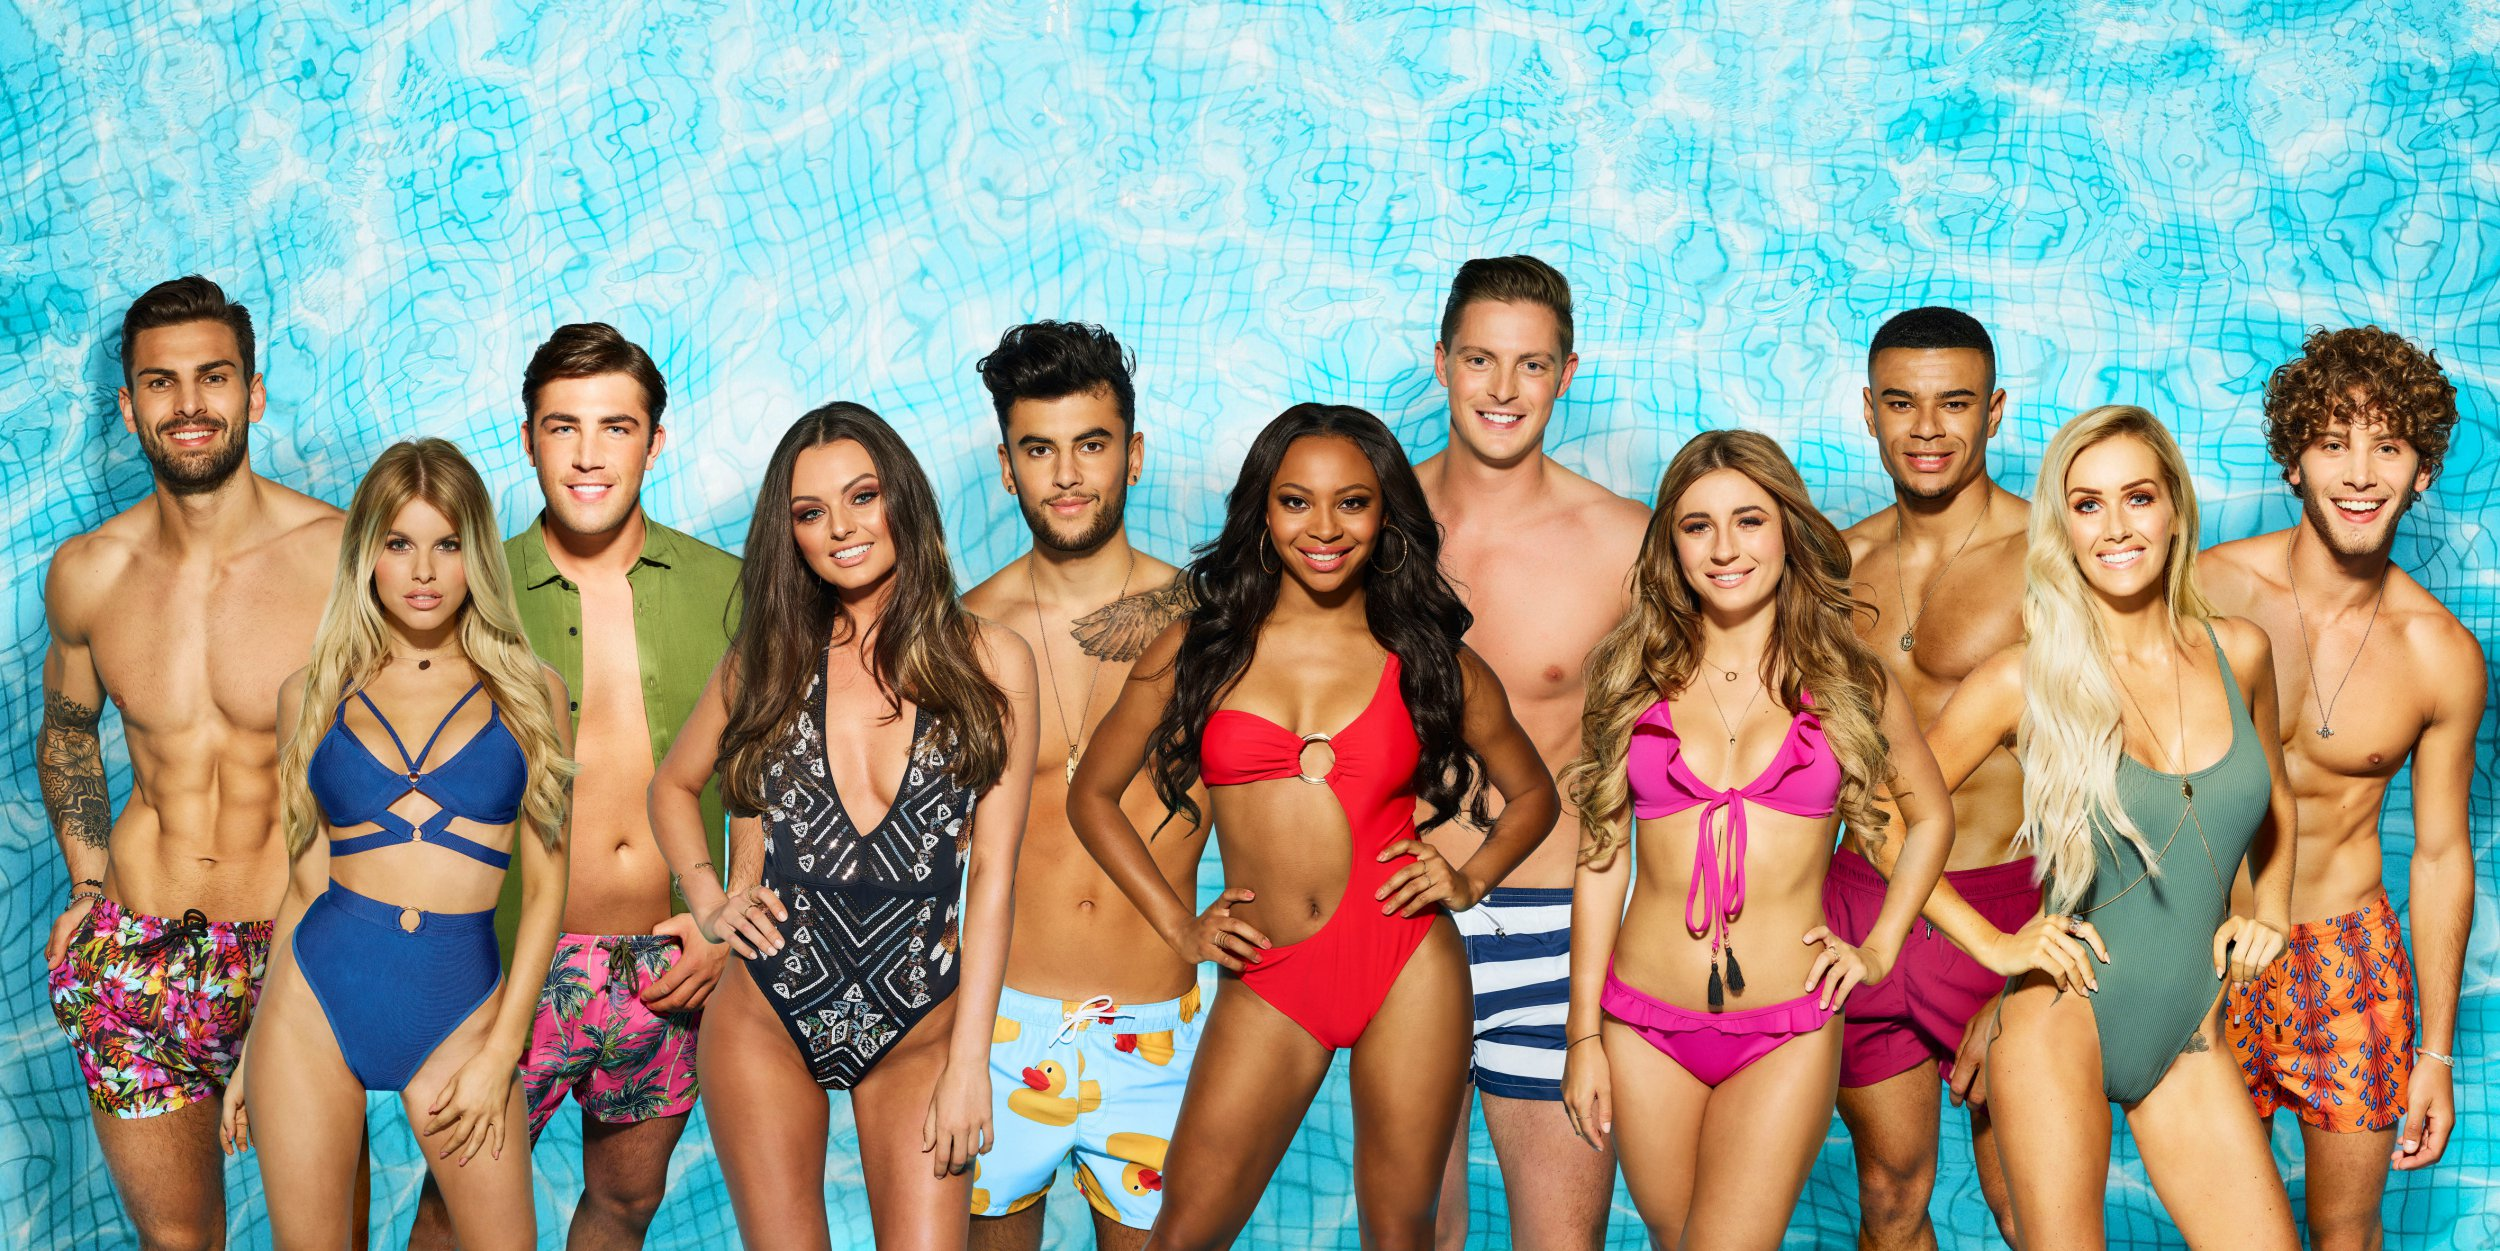 Love Island 2019 cast pay revealed for new season